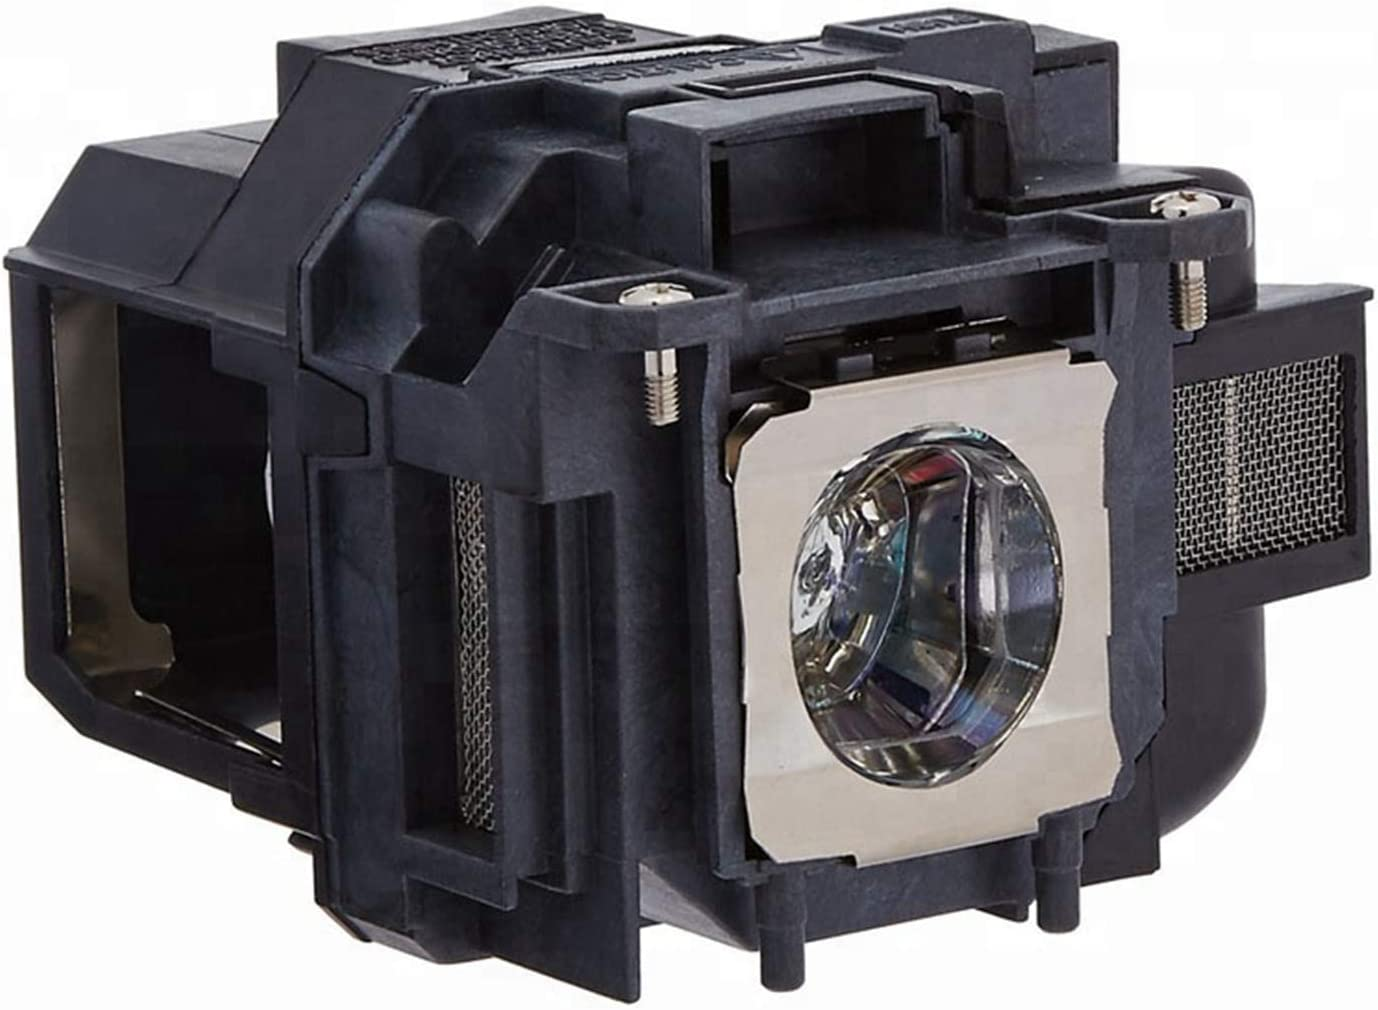 Rembam ELPLP88 V13H010L88 Projector Lamp Popular product Compatible Replacement High quality